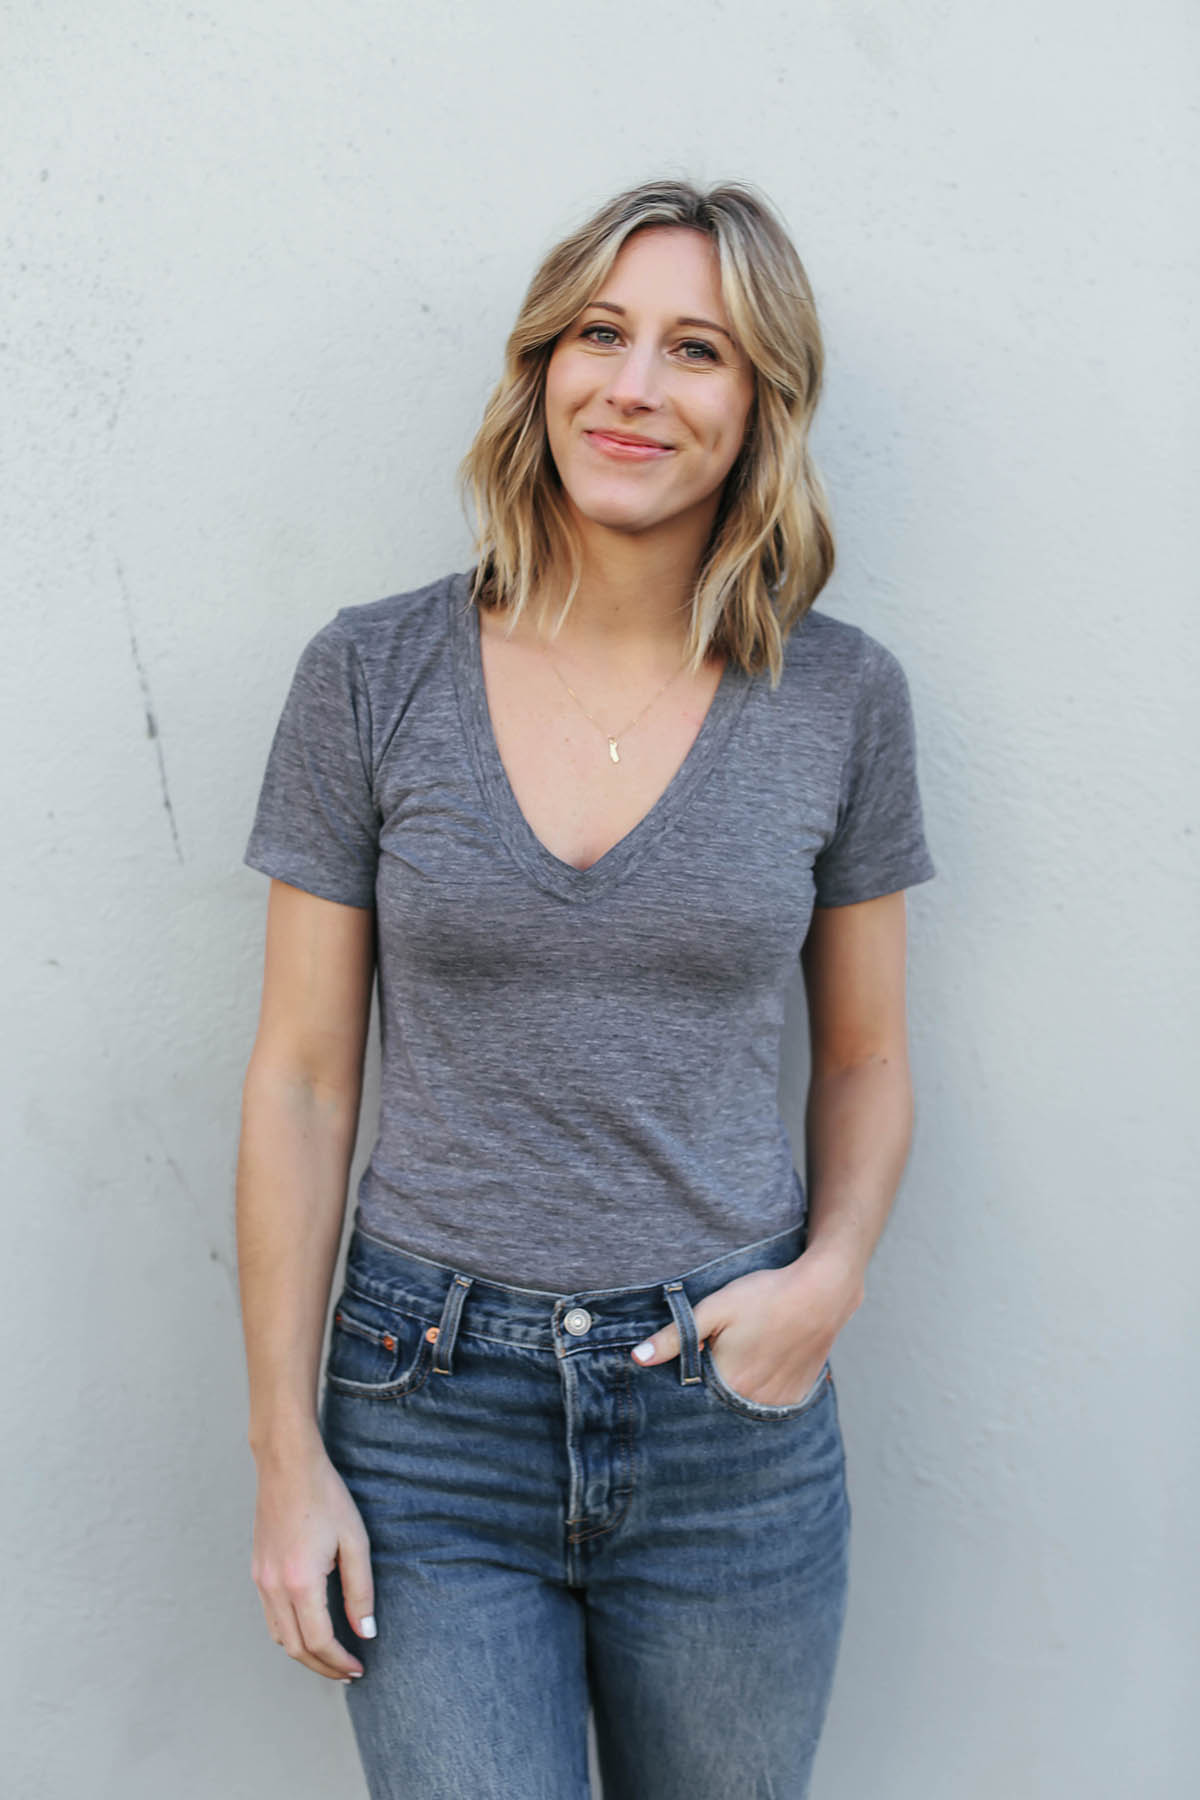 gray t-shirt and jeans